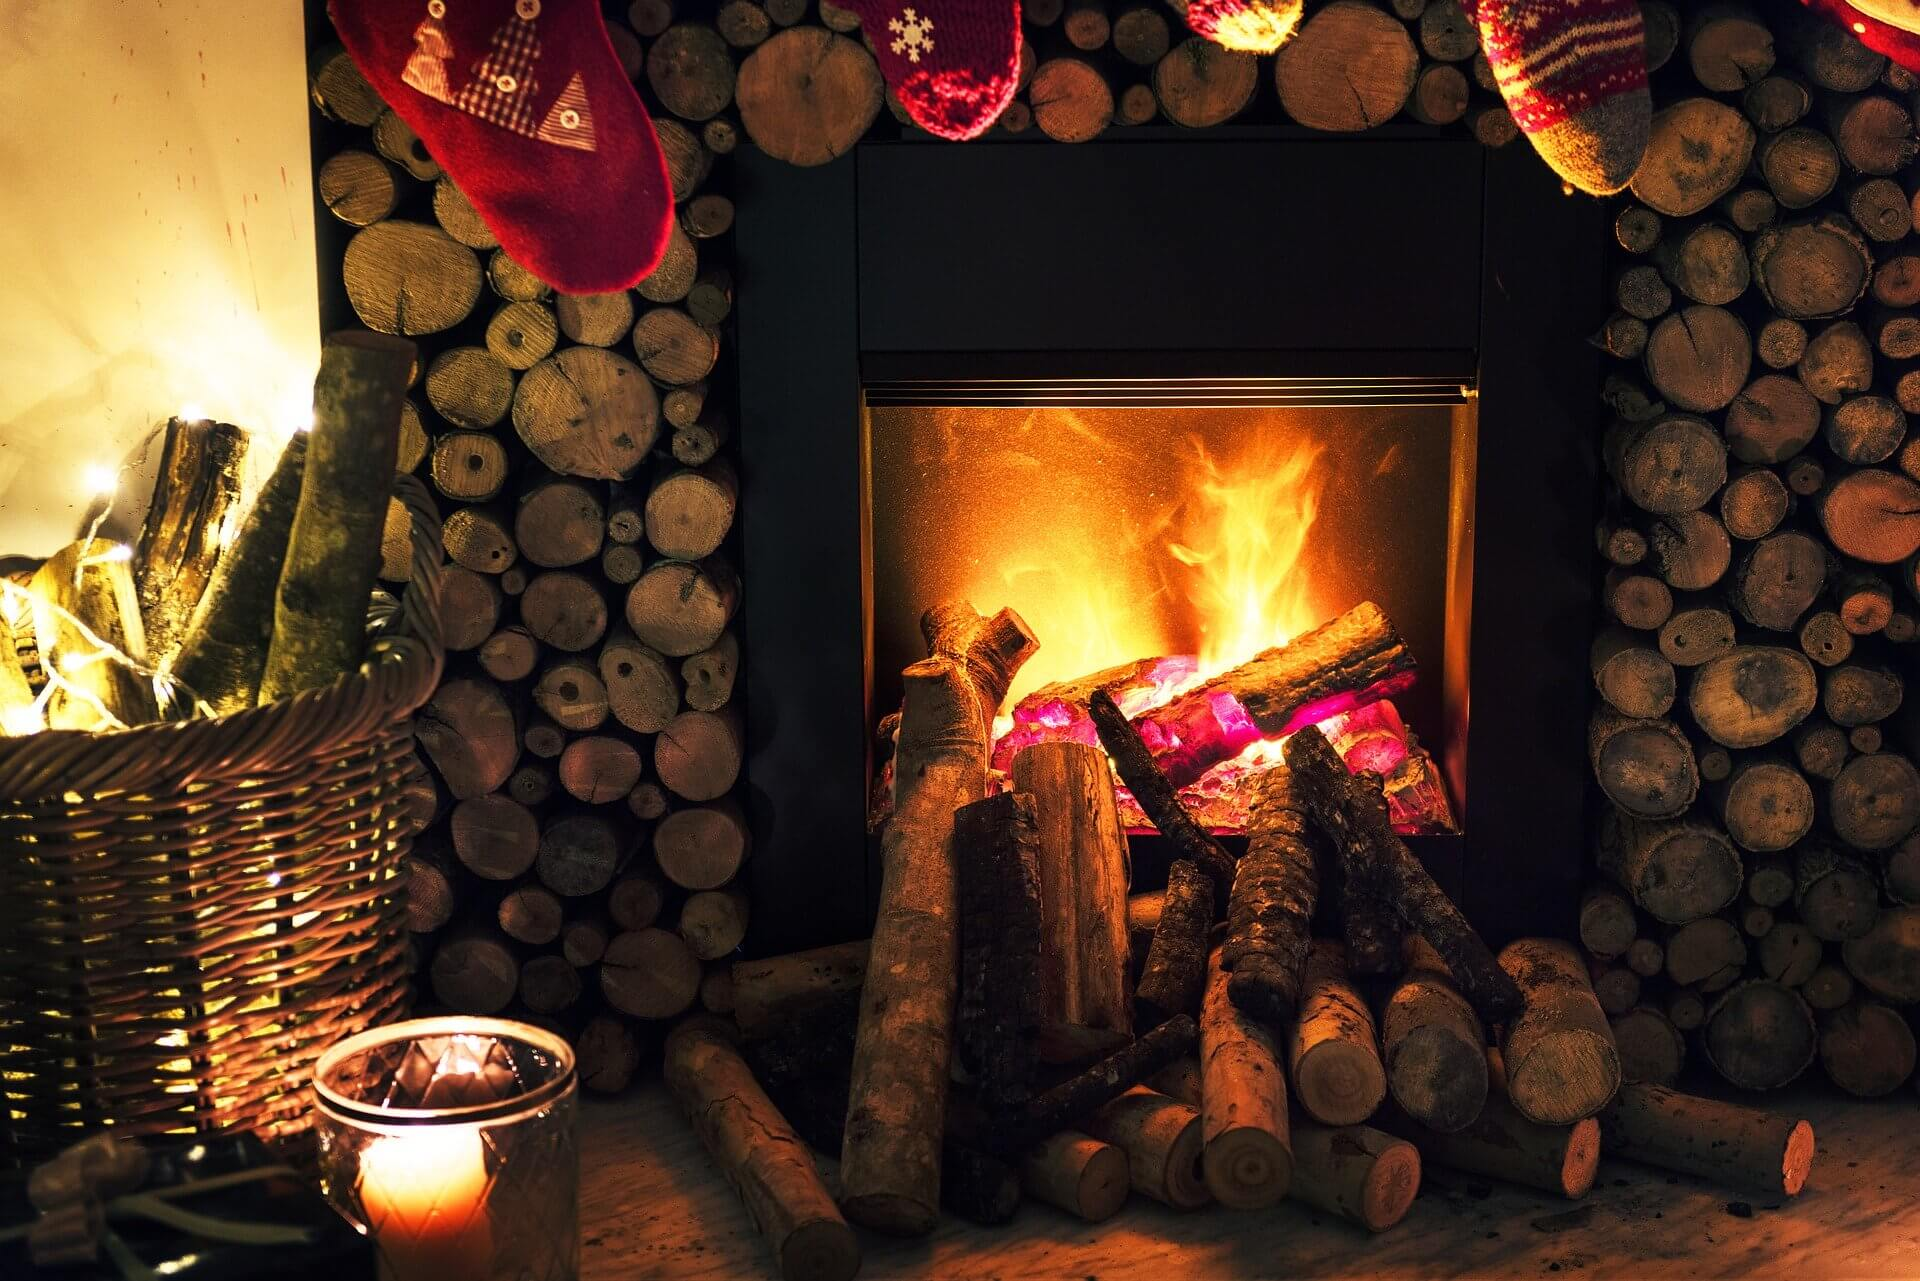 Save Cash With Our Holiday Energy Tips!